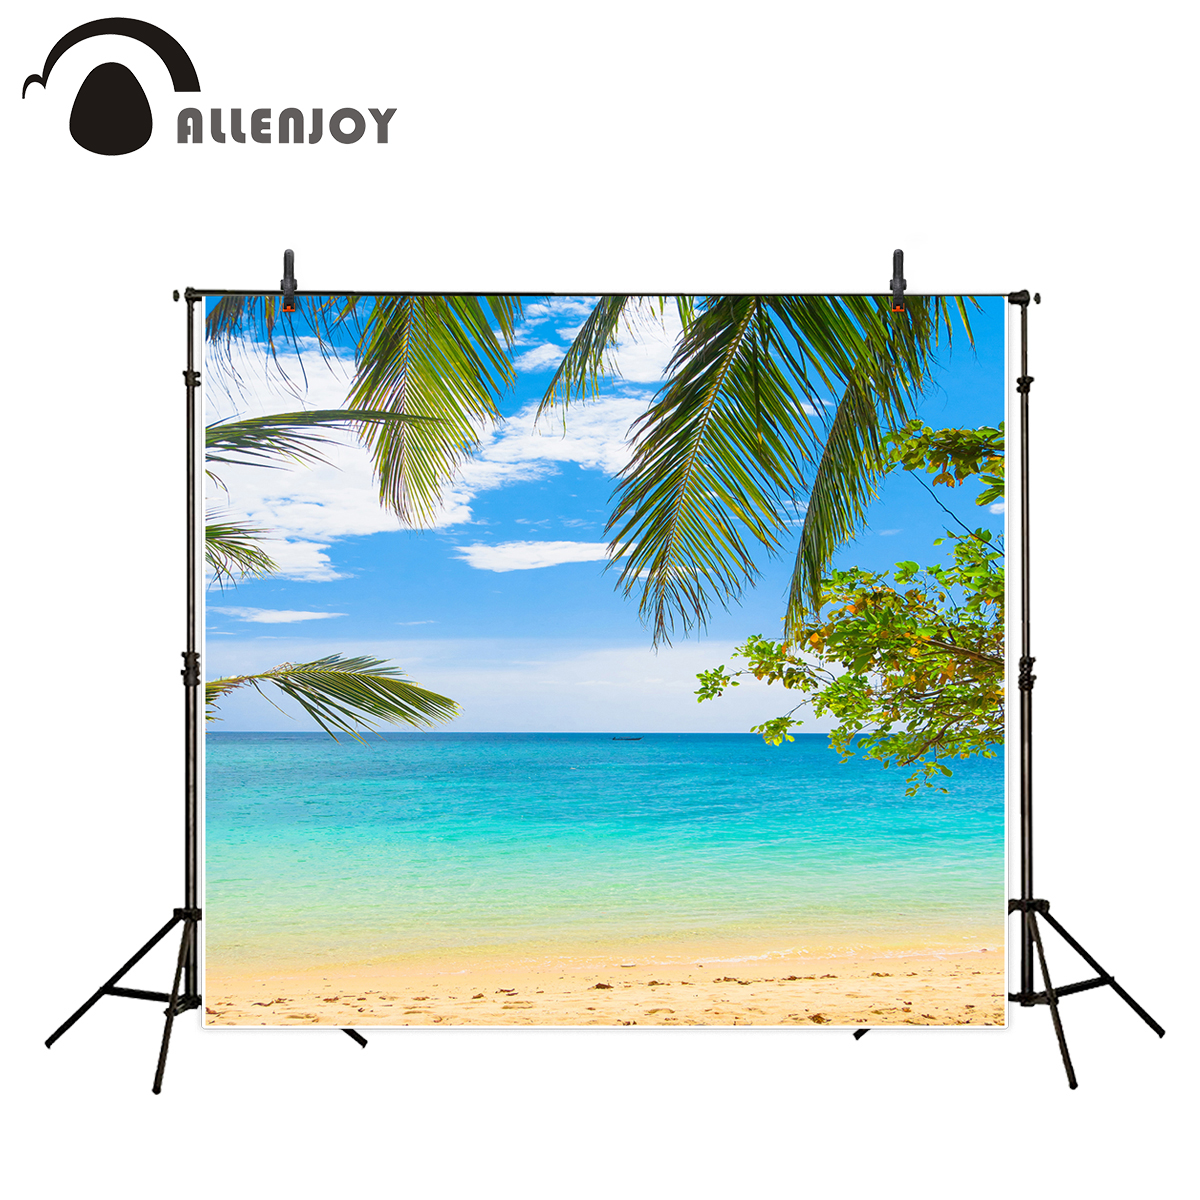 Allenjoy vacational photocall photo backdrop fabric beach natual scenery tree free wedding background photography photographer